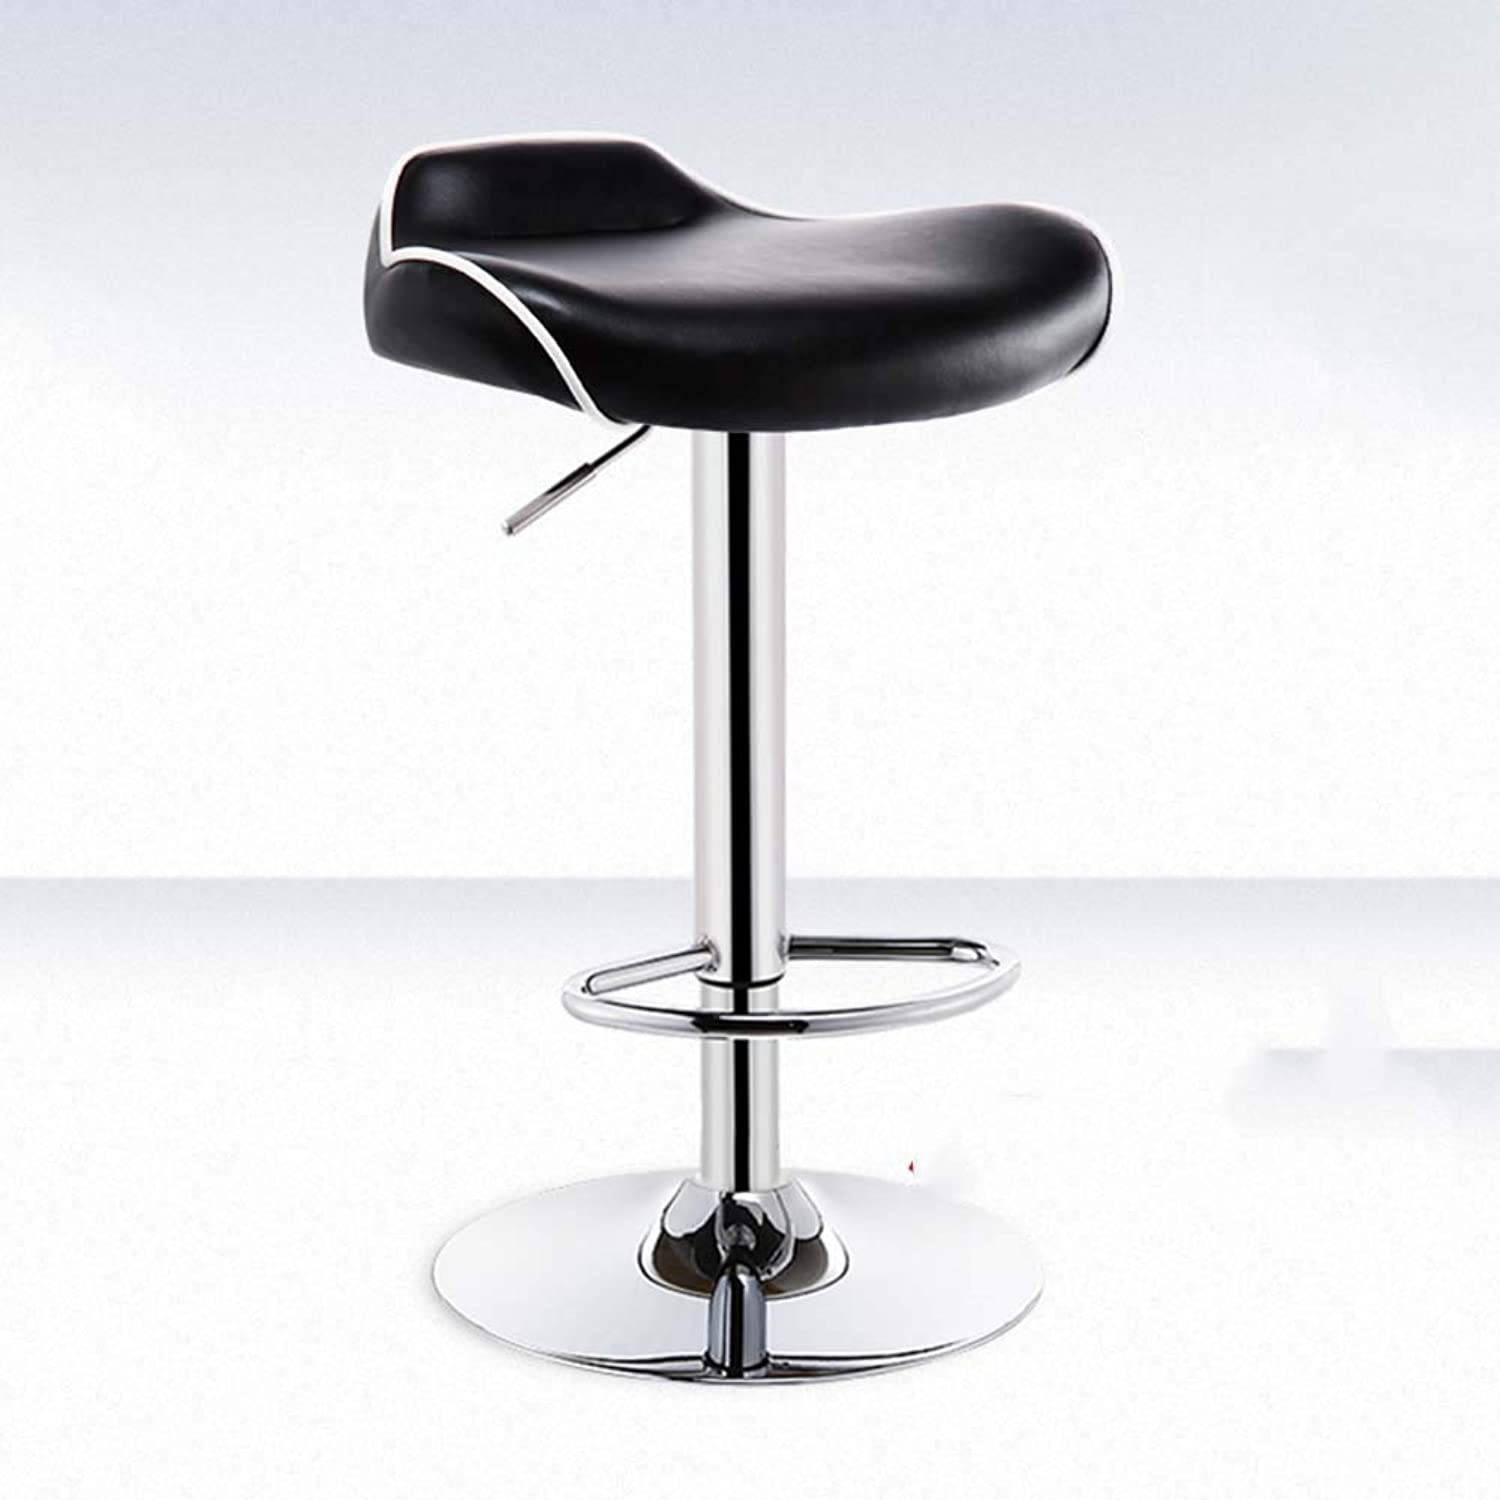 Pu Leather Bar stools, Simple Leisure Nordic Bar Chairs Creative Personality Study Desk Gaming Chair Fashion Swivel Stool-F